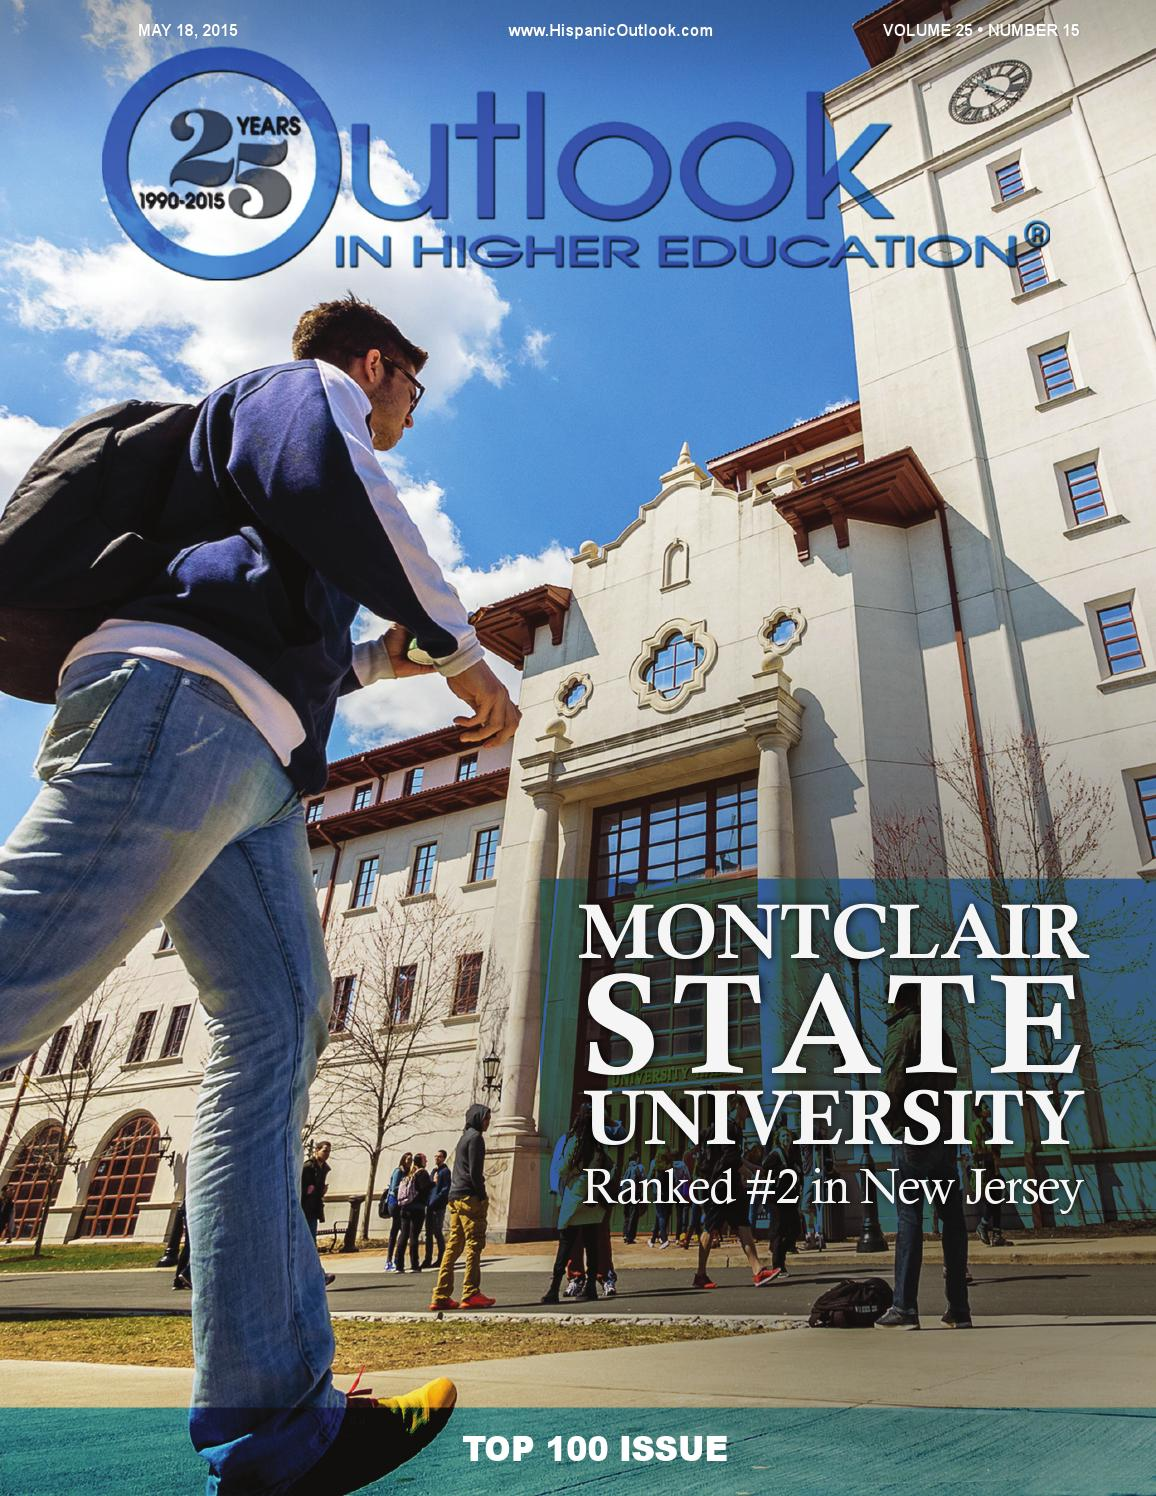 Ho 05 18 2015 top 100 issue by hispanic outlook on education magazine issuu